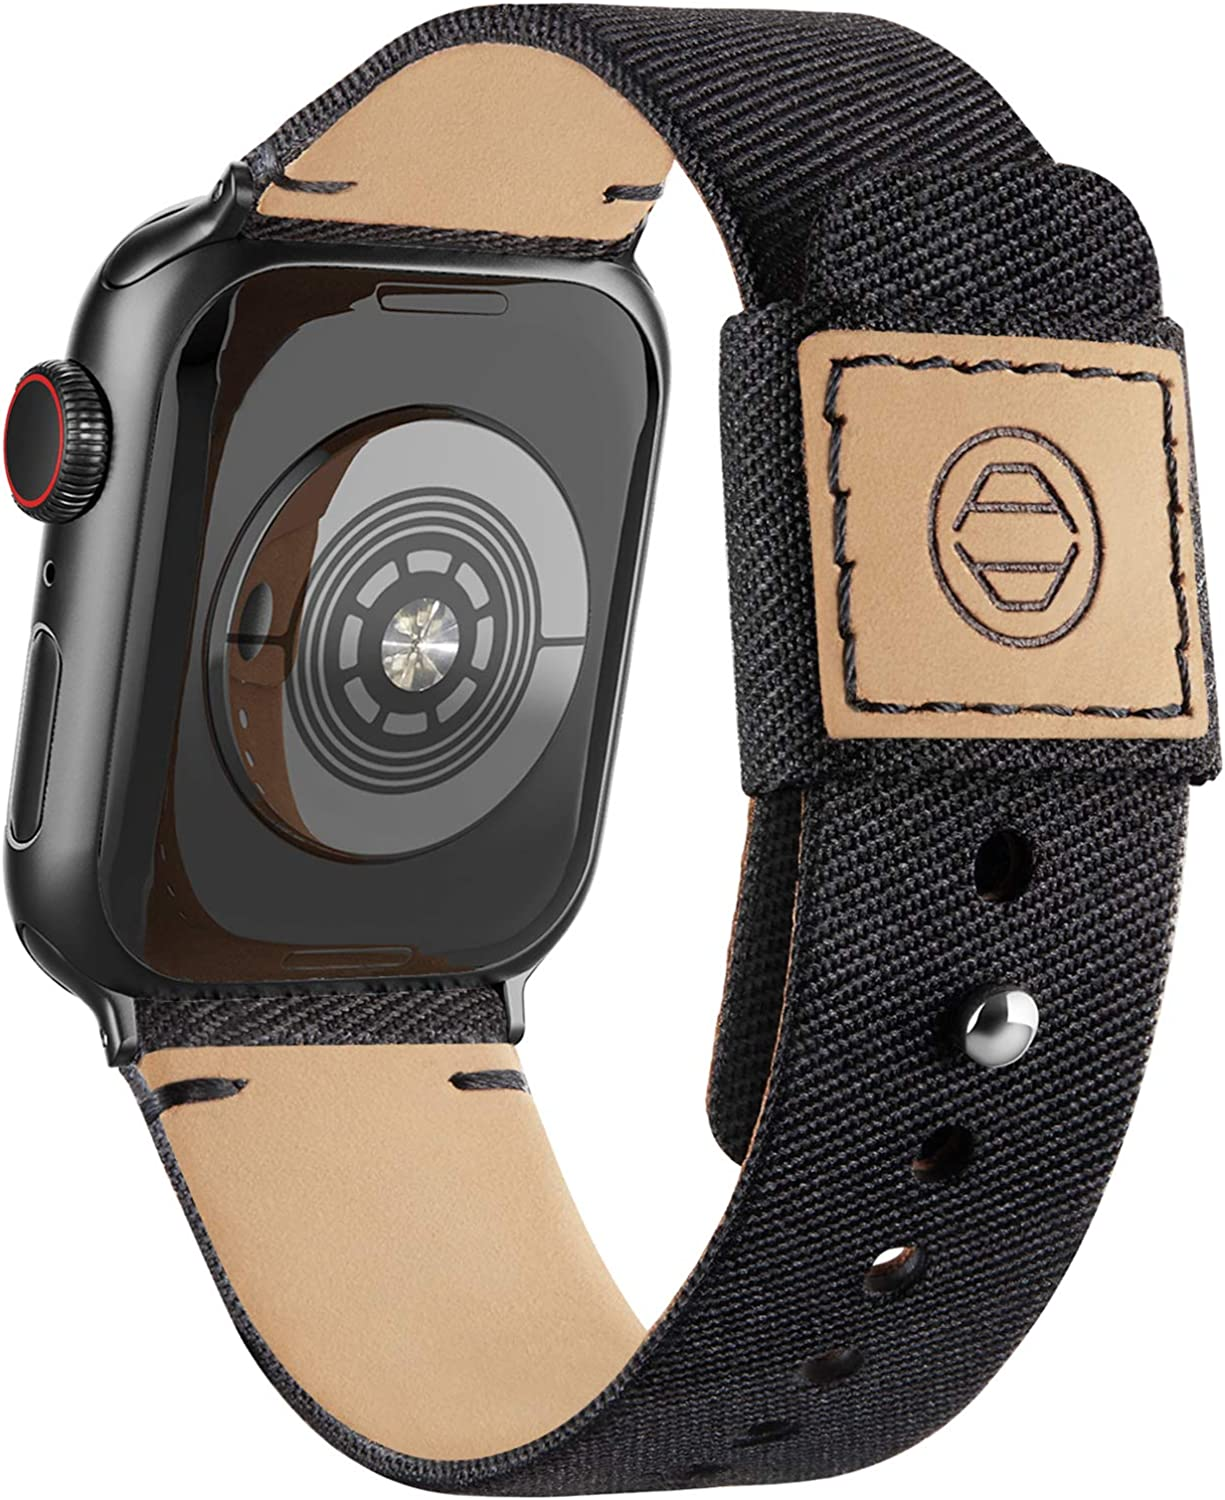 Adepoy Fabric Cloth Bands Compatible with Apple Watch 44mm 42mm 40mm 38mm, Canvas Strap with Soft Genuine Leather Lining and Snap Button for Apple iwatch Series 6/5/4/3/2/1 SE,Black 42/44mm